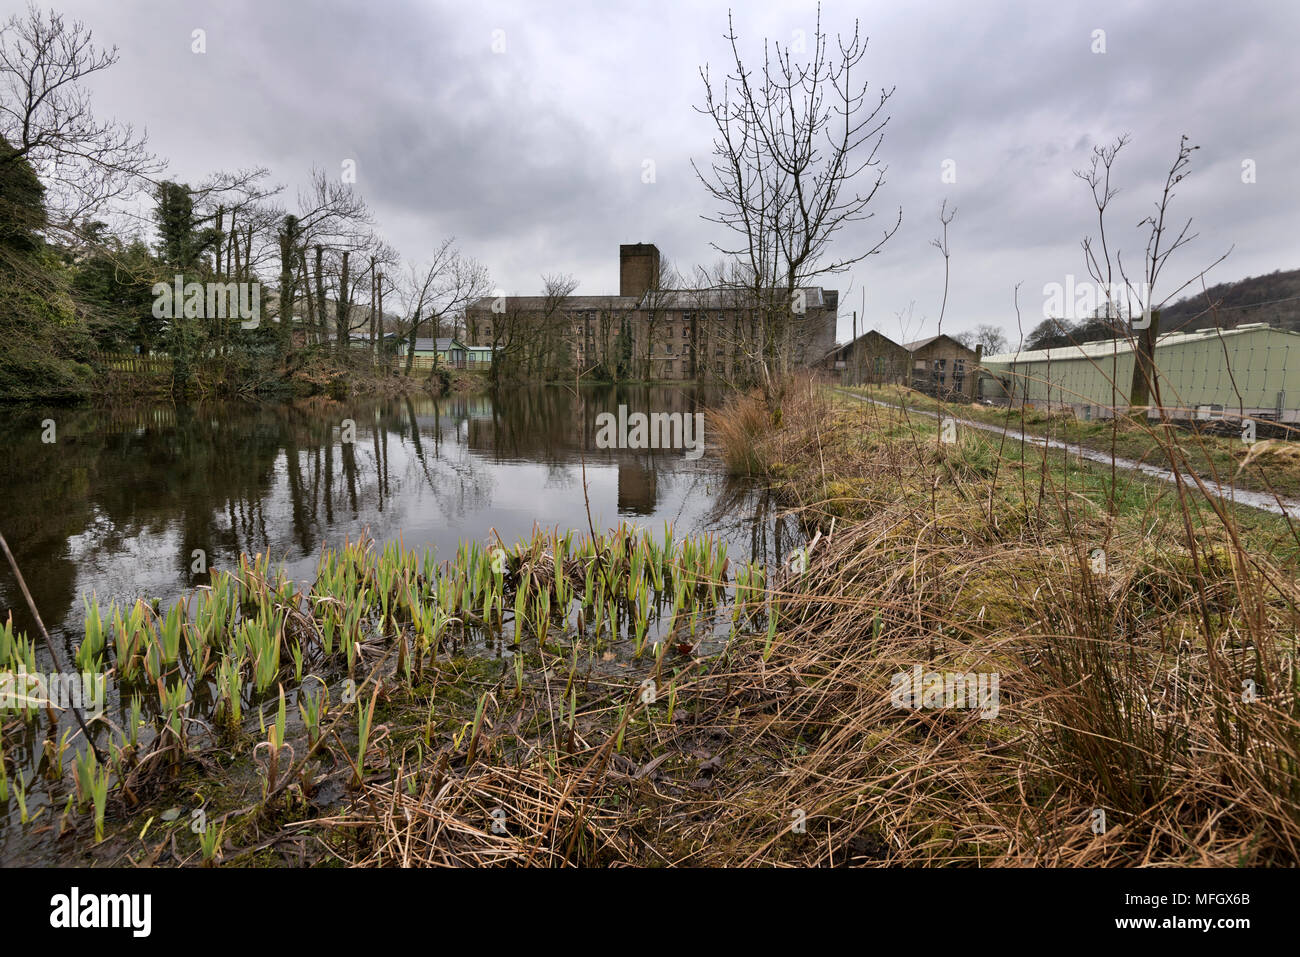 Former cotton mill at Langcliffe, near Settle, North Yorkshire. The mill now produces cardboard packaging. - Stock Image